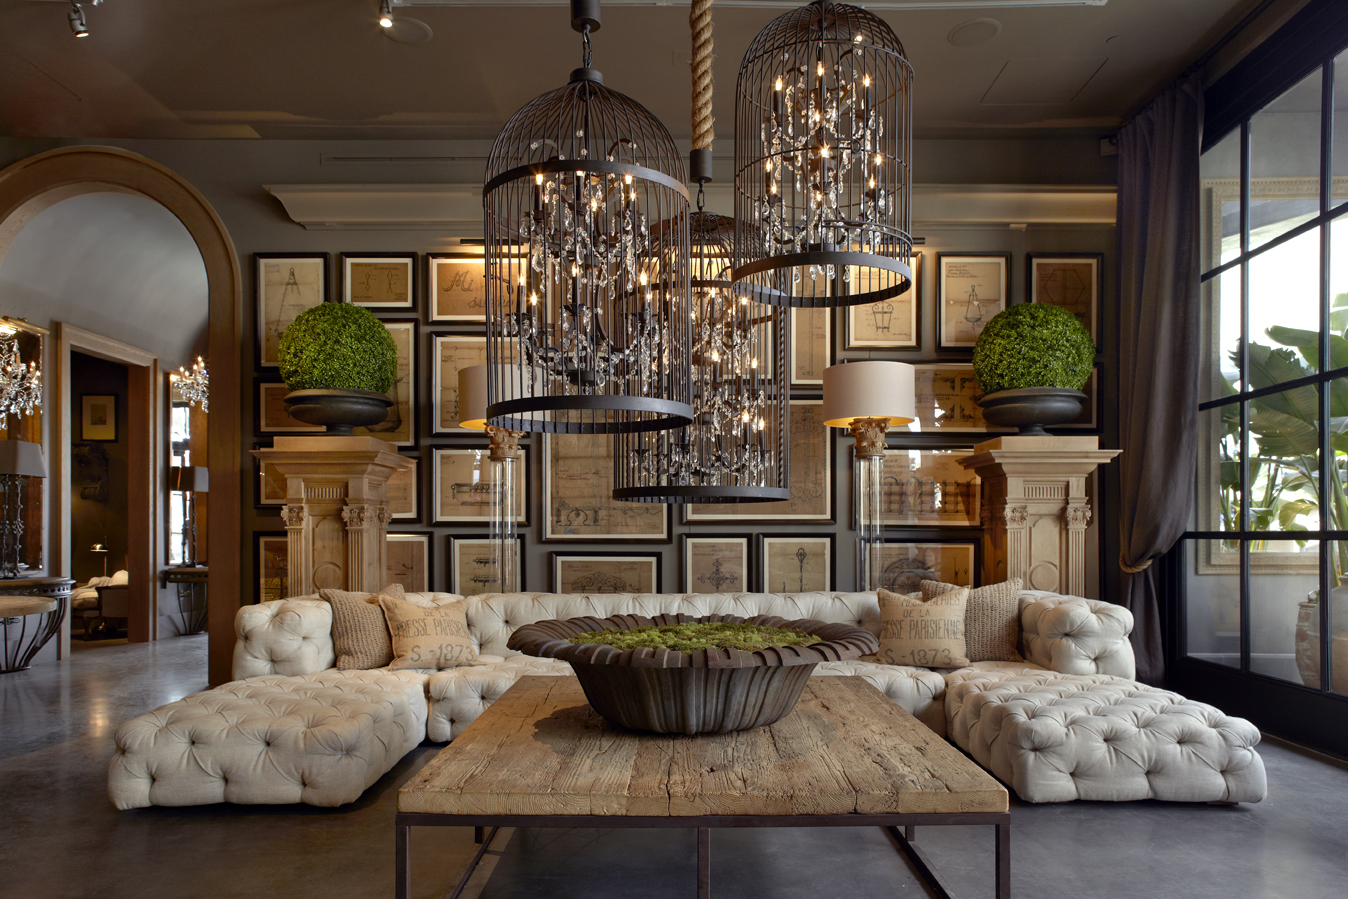 FileRestoration Hardware 11 12 11 0527jpg Wikimedia Commons